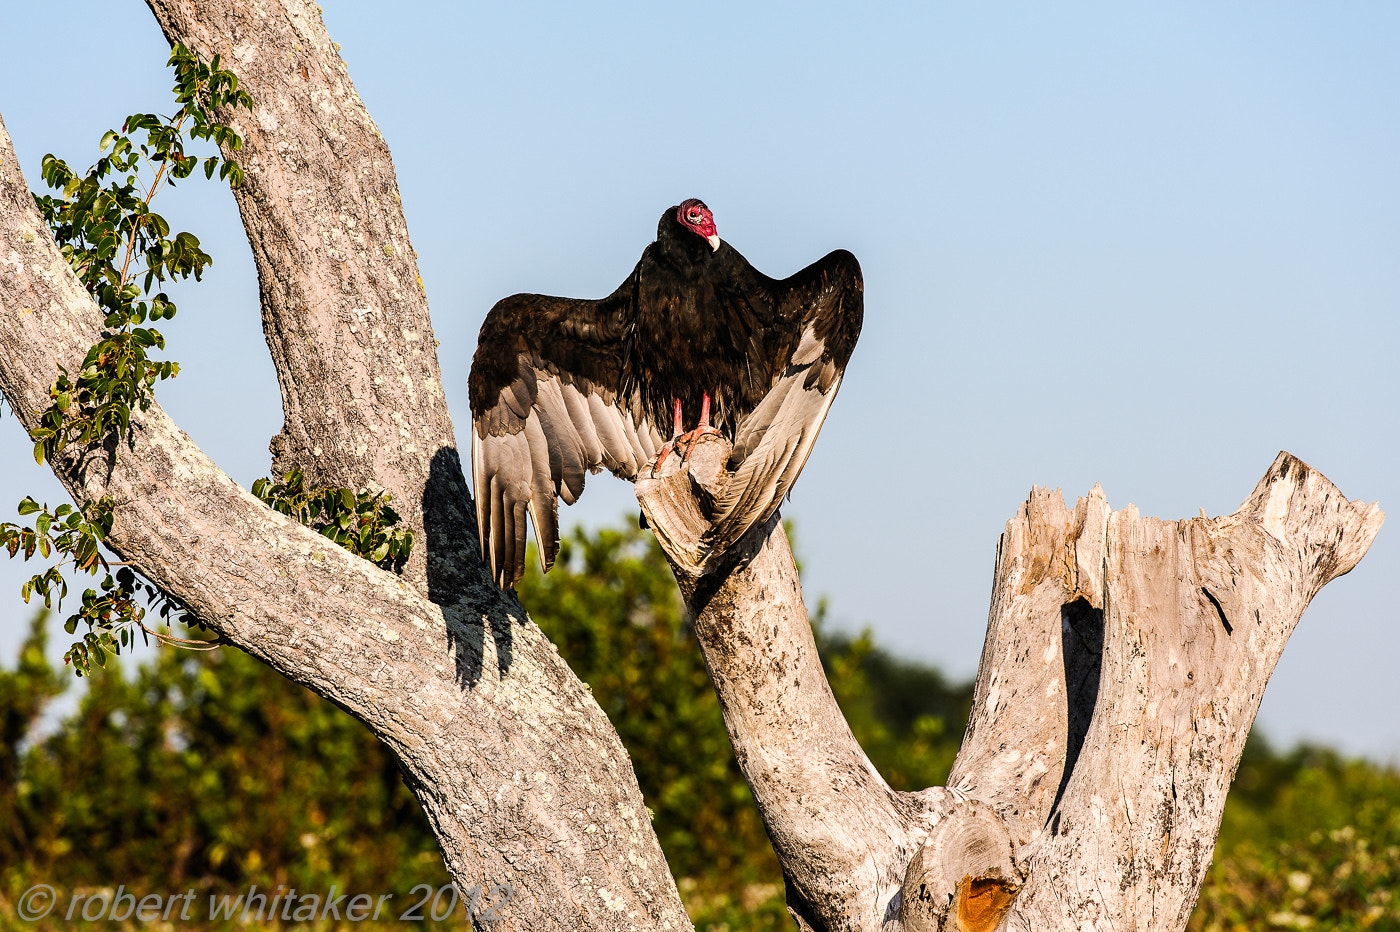 Photograph Turkey Vulture by Robert Whitaker on 500px